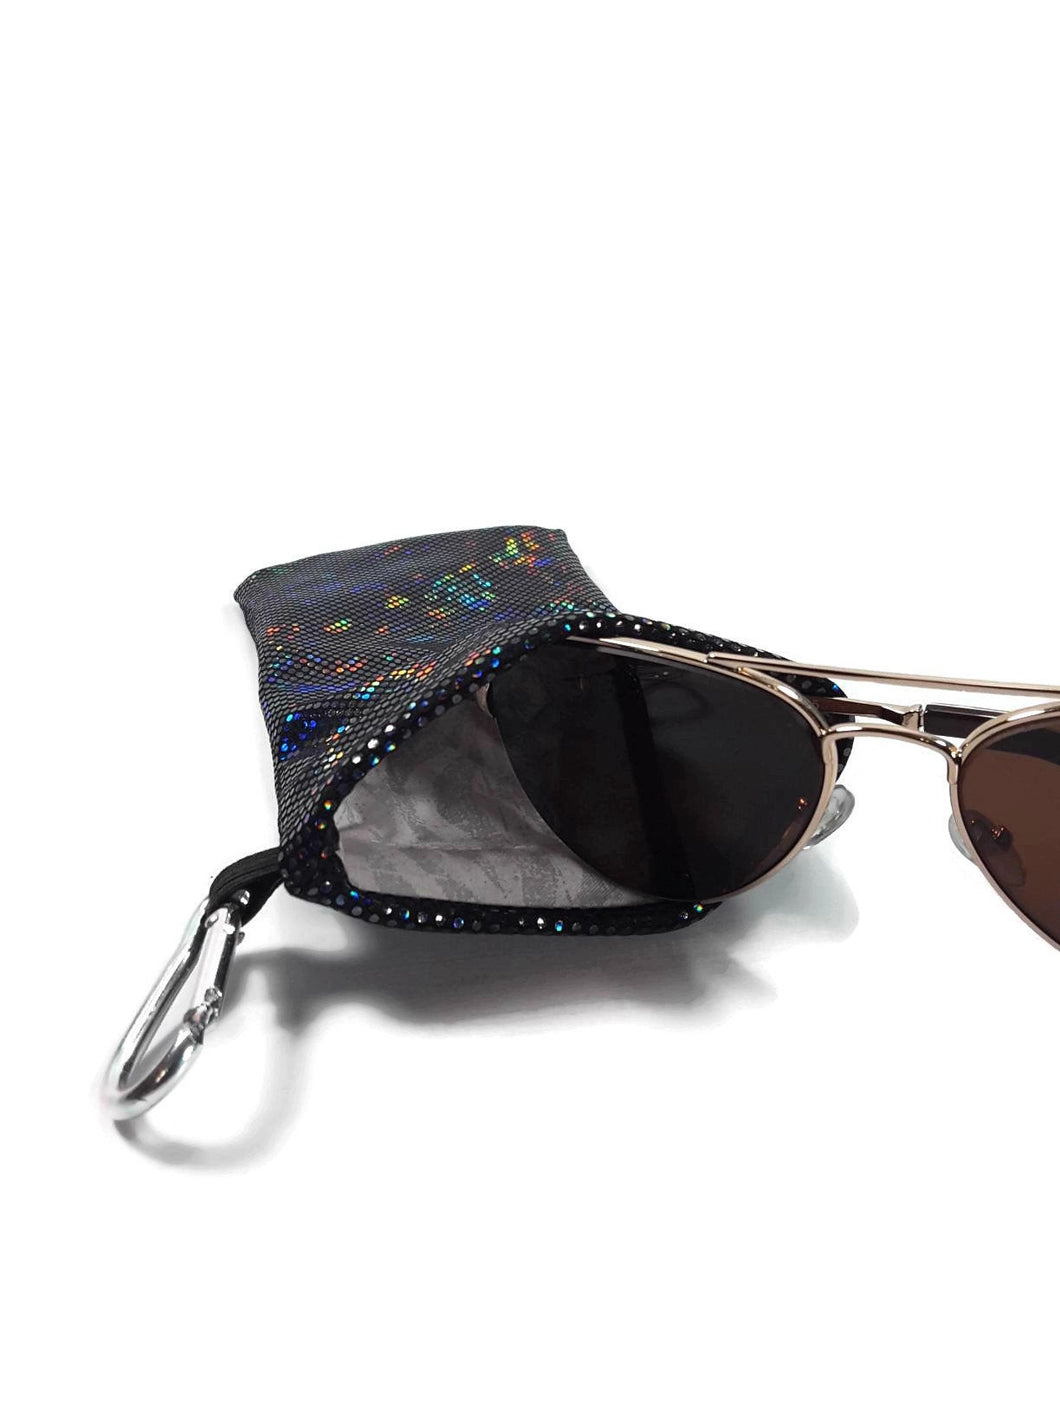 Sunglasses Glasses Case Snappy Snap Closure Black Shattered Glass Hologram - Fliptastic Leos